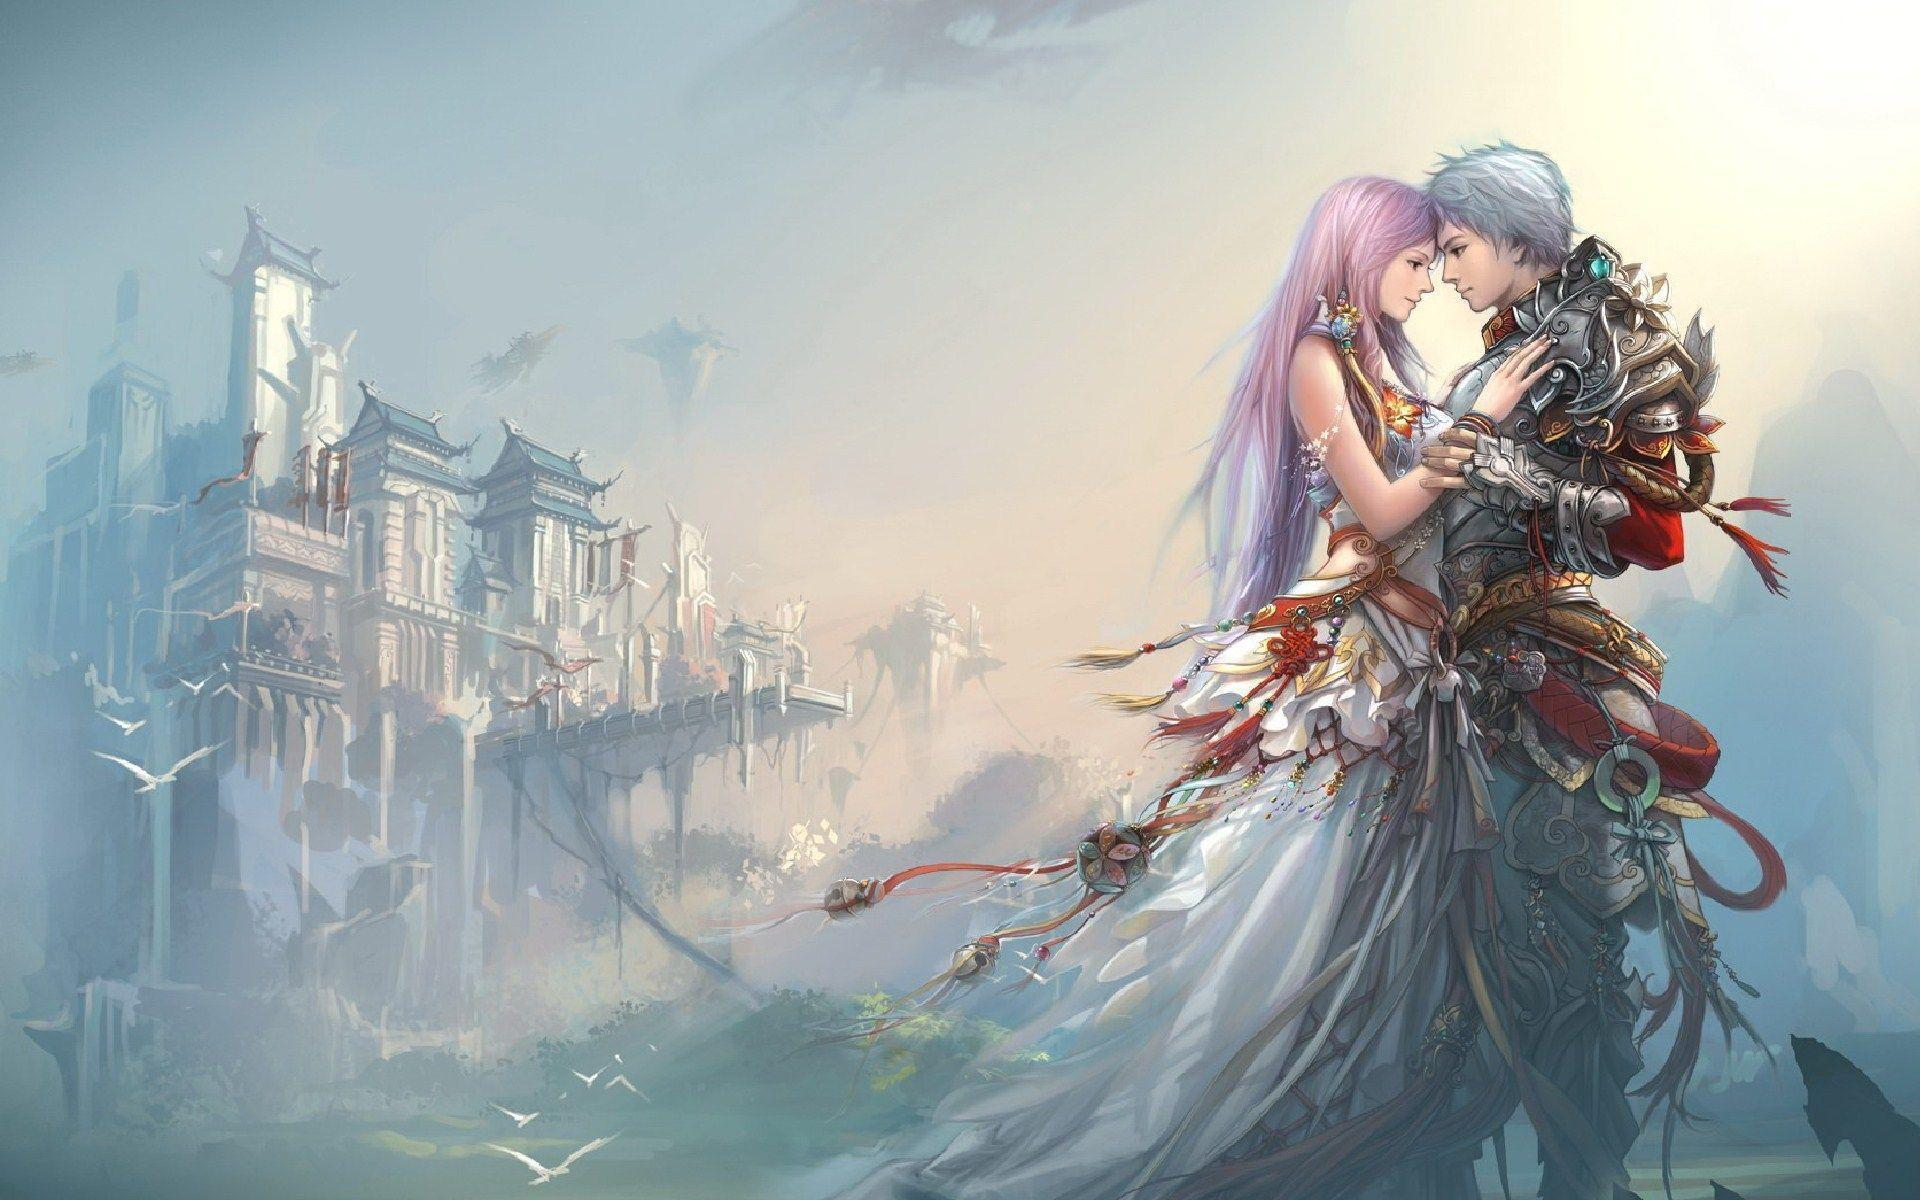 Sweet Anime Love Wallpaper Desktop : Anime Love Wallpapers - Wallpaper cave